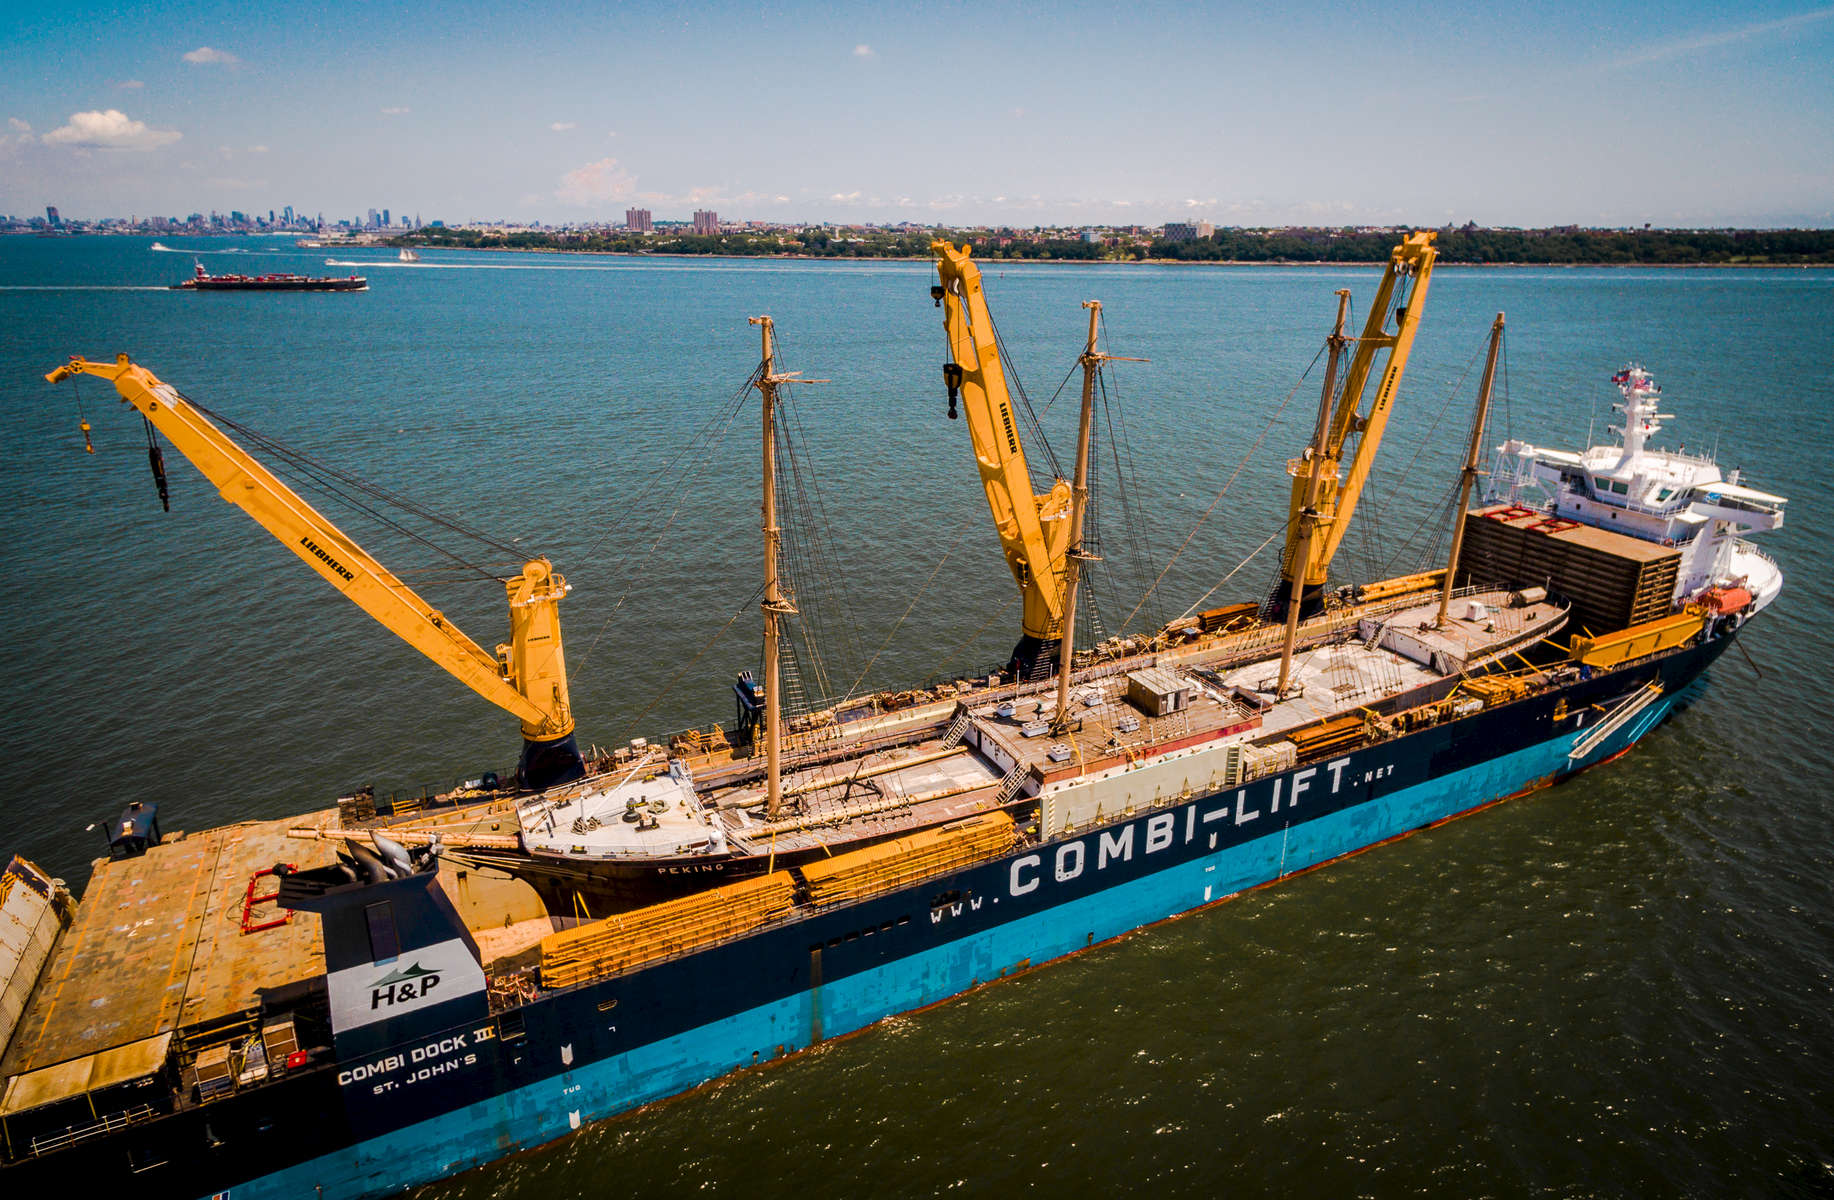 Tall Ship Peking, formerly owned by South Street Seaport Museum, NYC has been sold to the Hamburg Maritim Foundation.  Sails to Hamburg aboard the heavy lift semi-submersible vessel COMBI-DOCK III, owned by Combi-Lift.  Peking is 377 foot long, built from rivieted steel in 1911.  Masts 170'. Photo by Jonathan Atkin with professional drone.